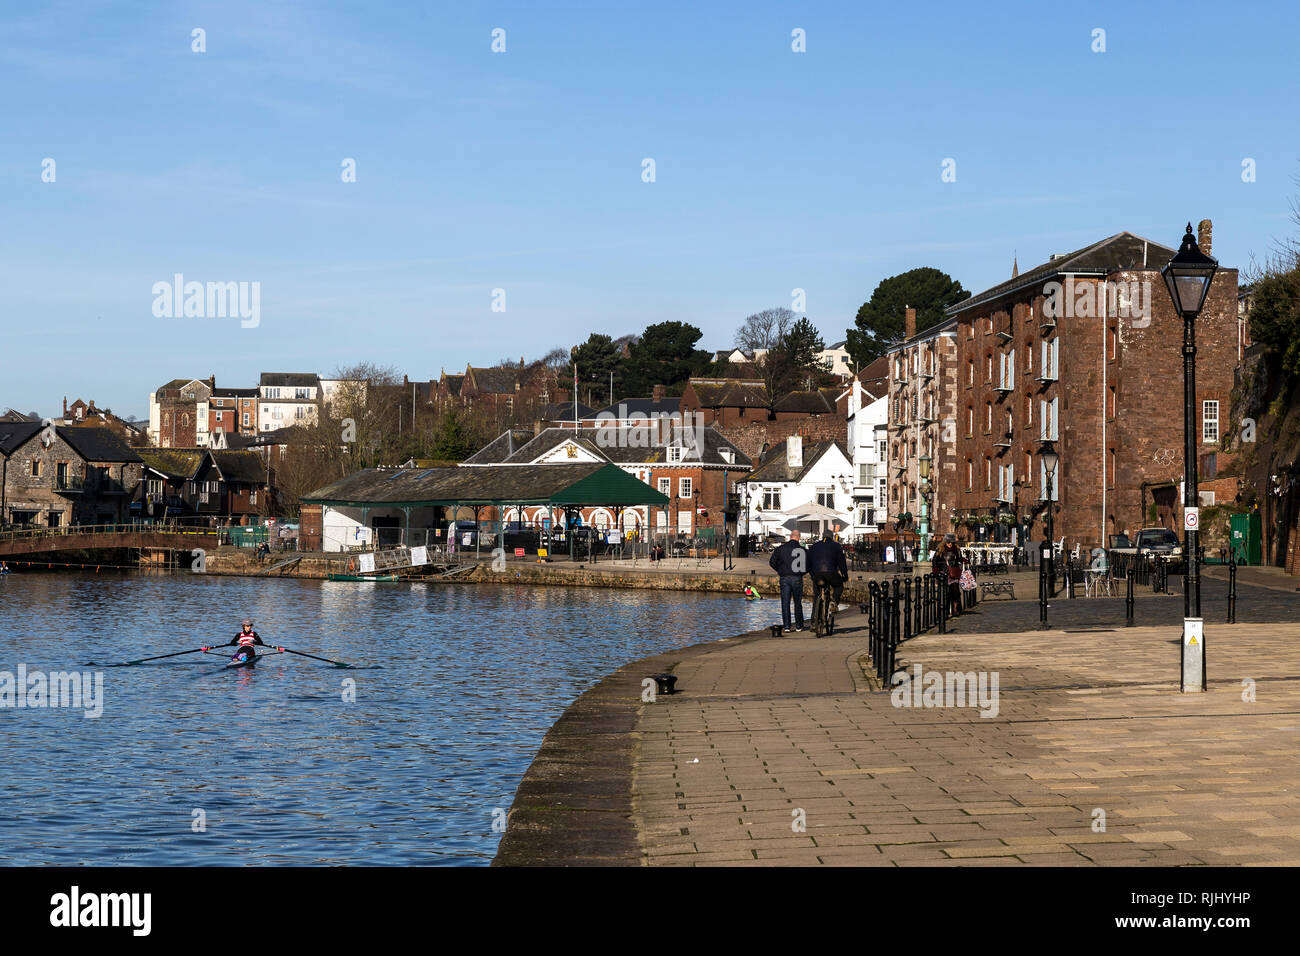 Exeter Quay,Exeter Quay, also known as Exeter Quayside, is a part of the city of Exeter next to the River Exe and the Exeter Ship Canal. rowing Exe - Stock Image